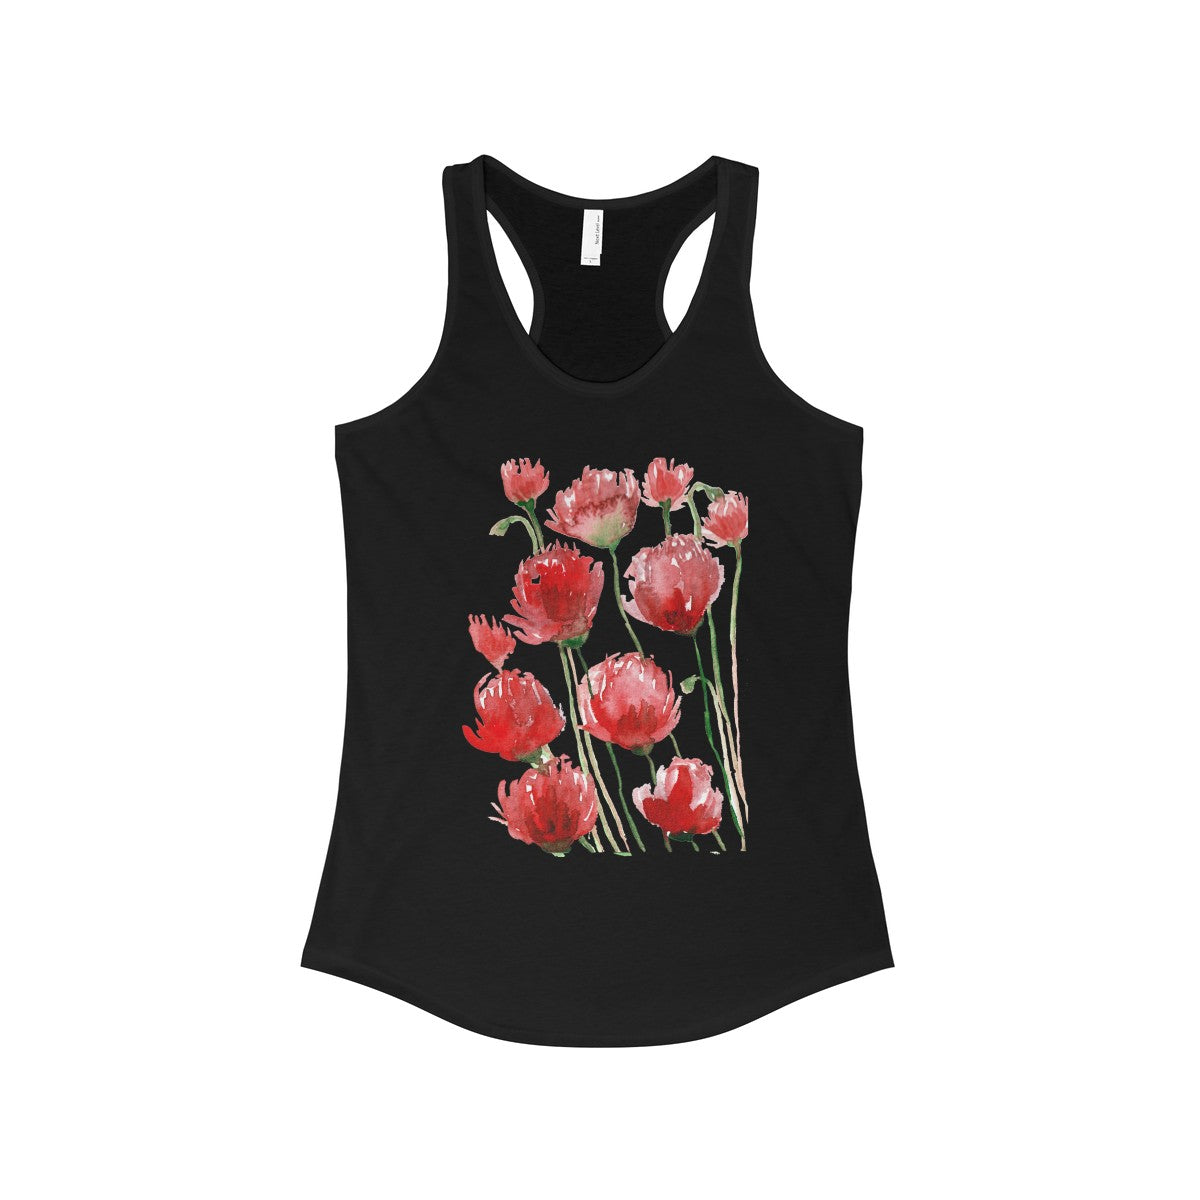 Tadayoshi Red Poppy Flower Floral Print Women's Ideal Racerback Tank - Made in the USA-Tank Top-Solid Black-L-Heidi Kimura Art LLC